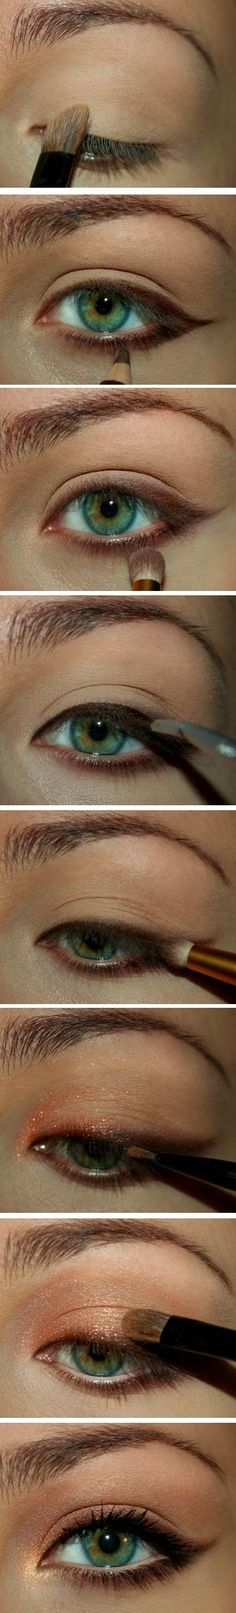 Awesome makeup for green or blue eyes. by dada.sindrestean